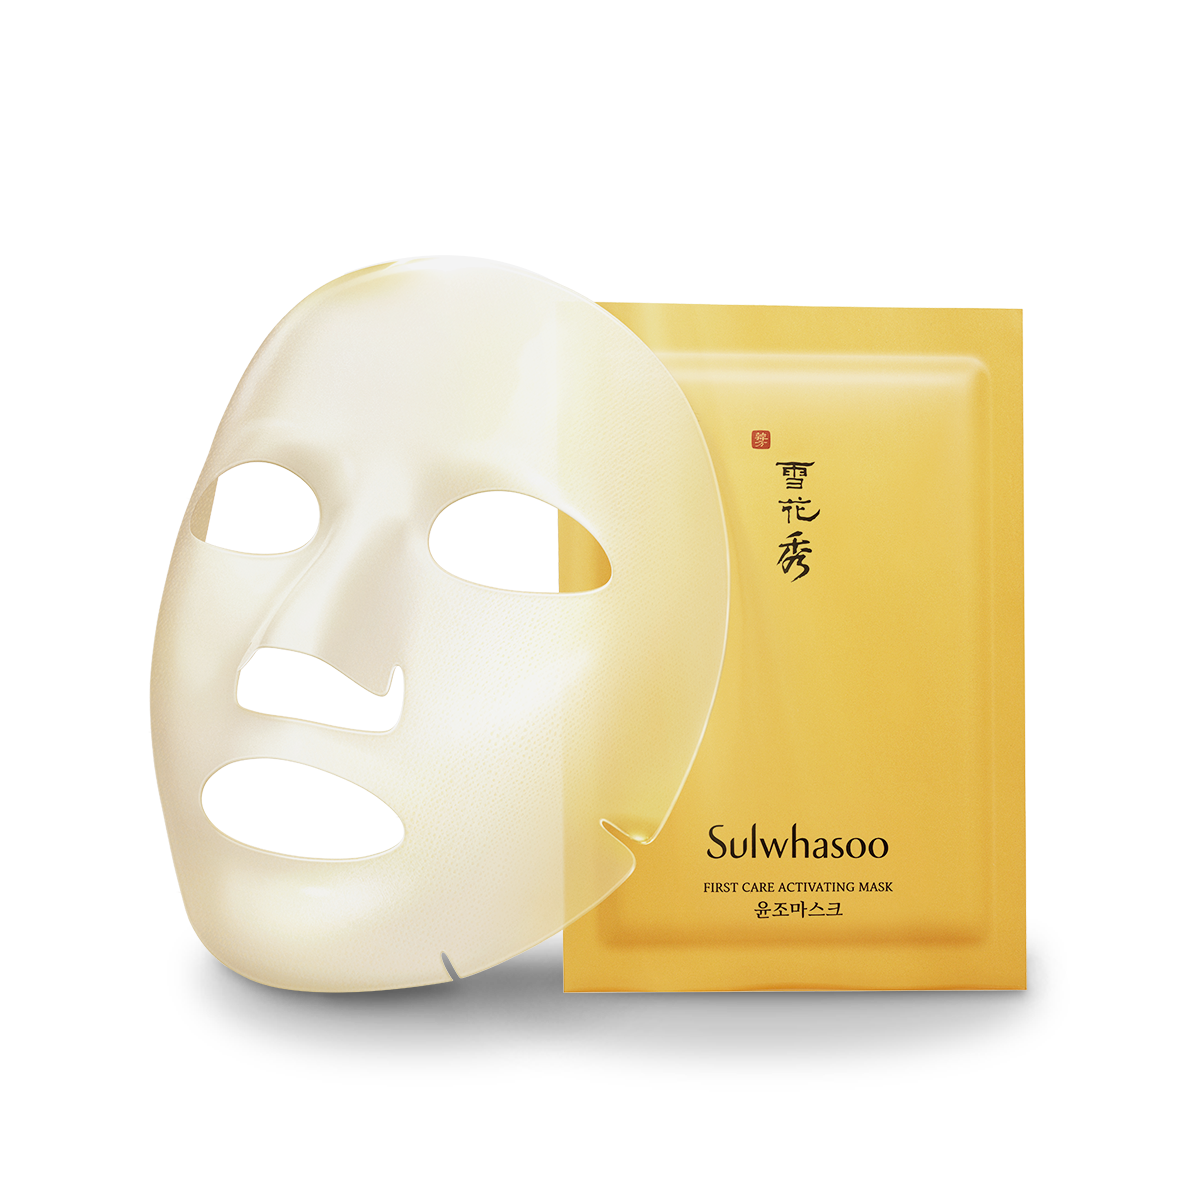 Sulwhasoo First Care Activating Mask 23g*5ea.